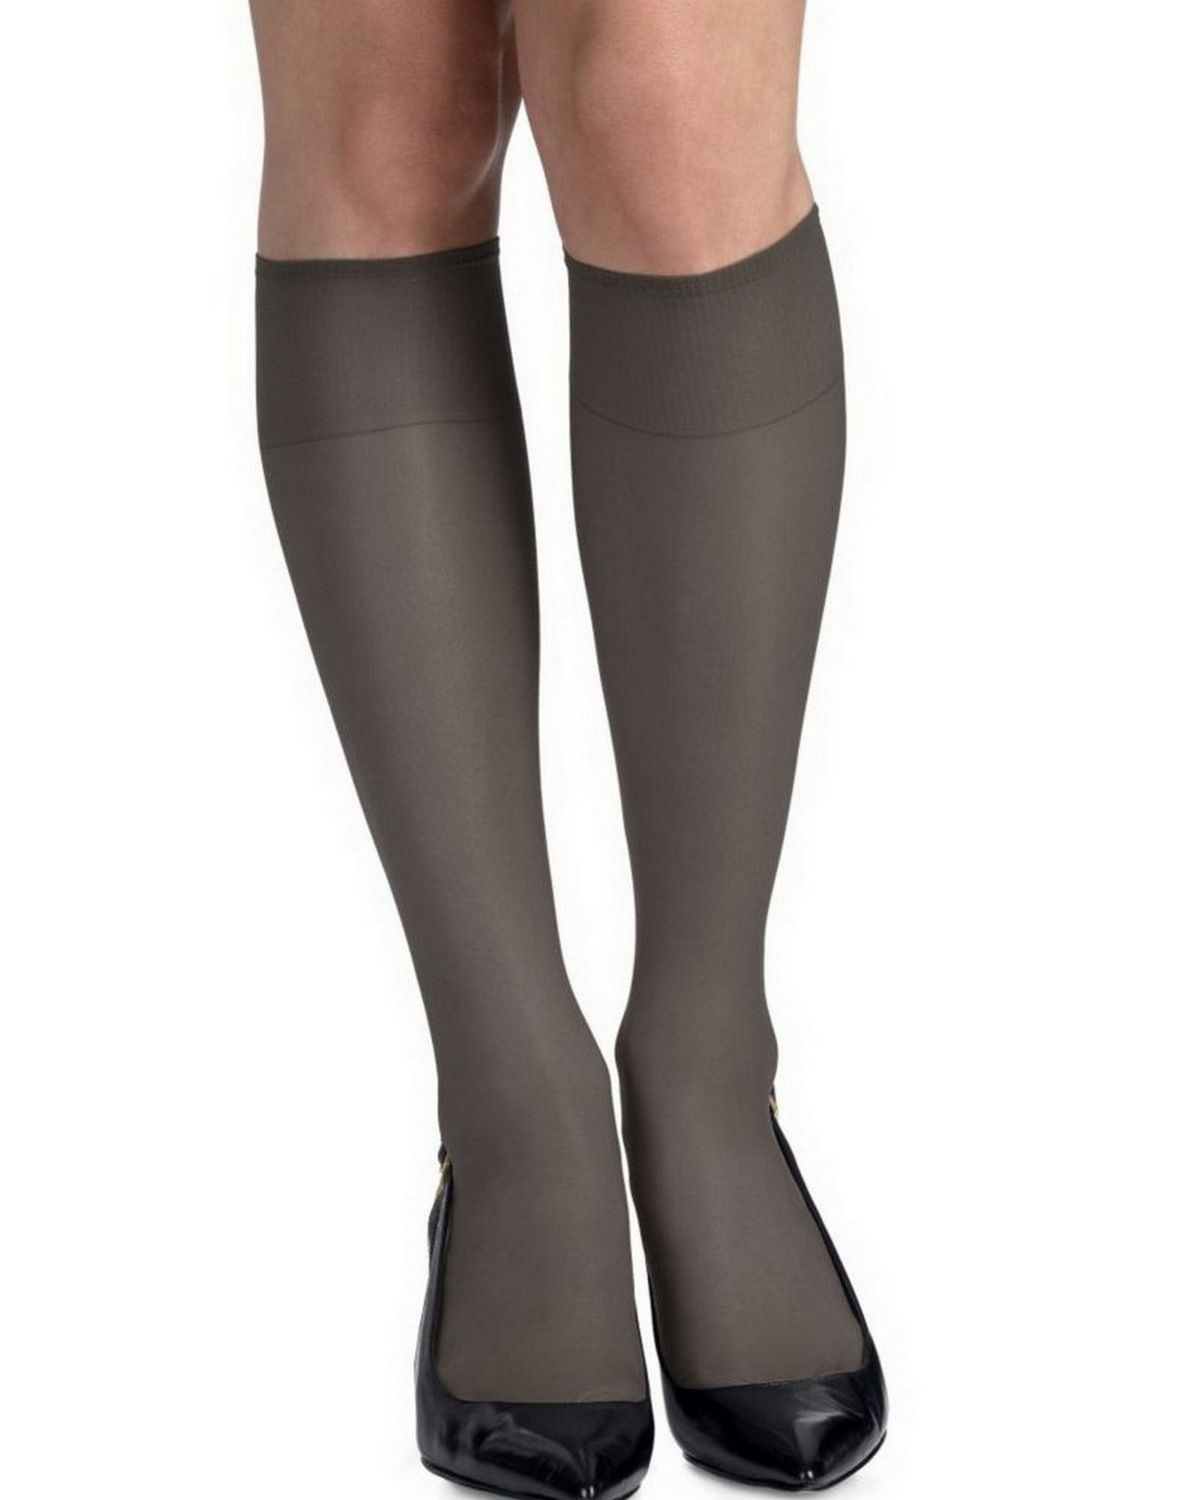 Hanes 775 Women's Silk Reflections Silky Sheer Knee Highs Reinforced Toe 2-Pack - Jet - One Size #silk